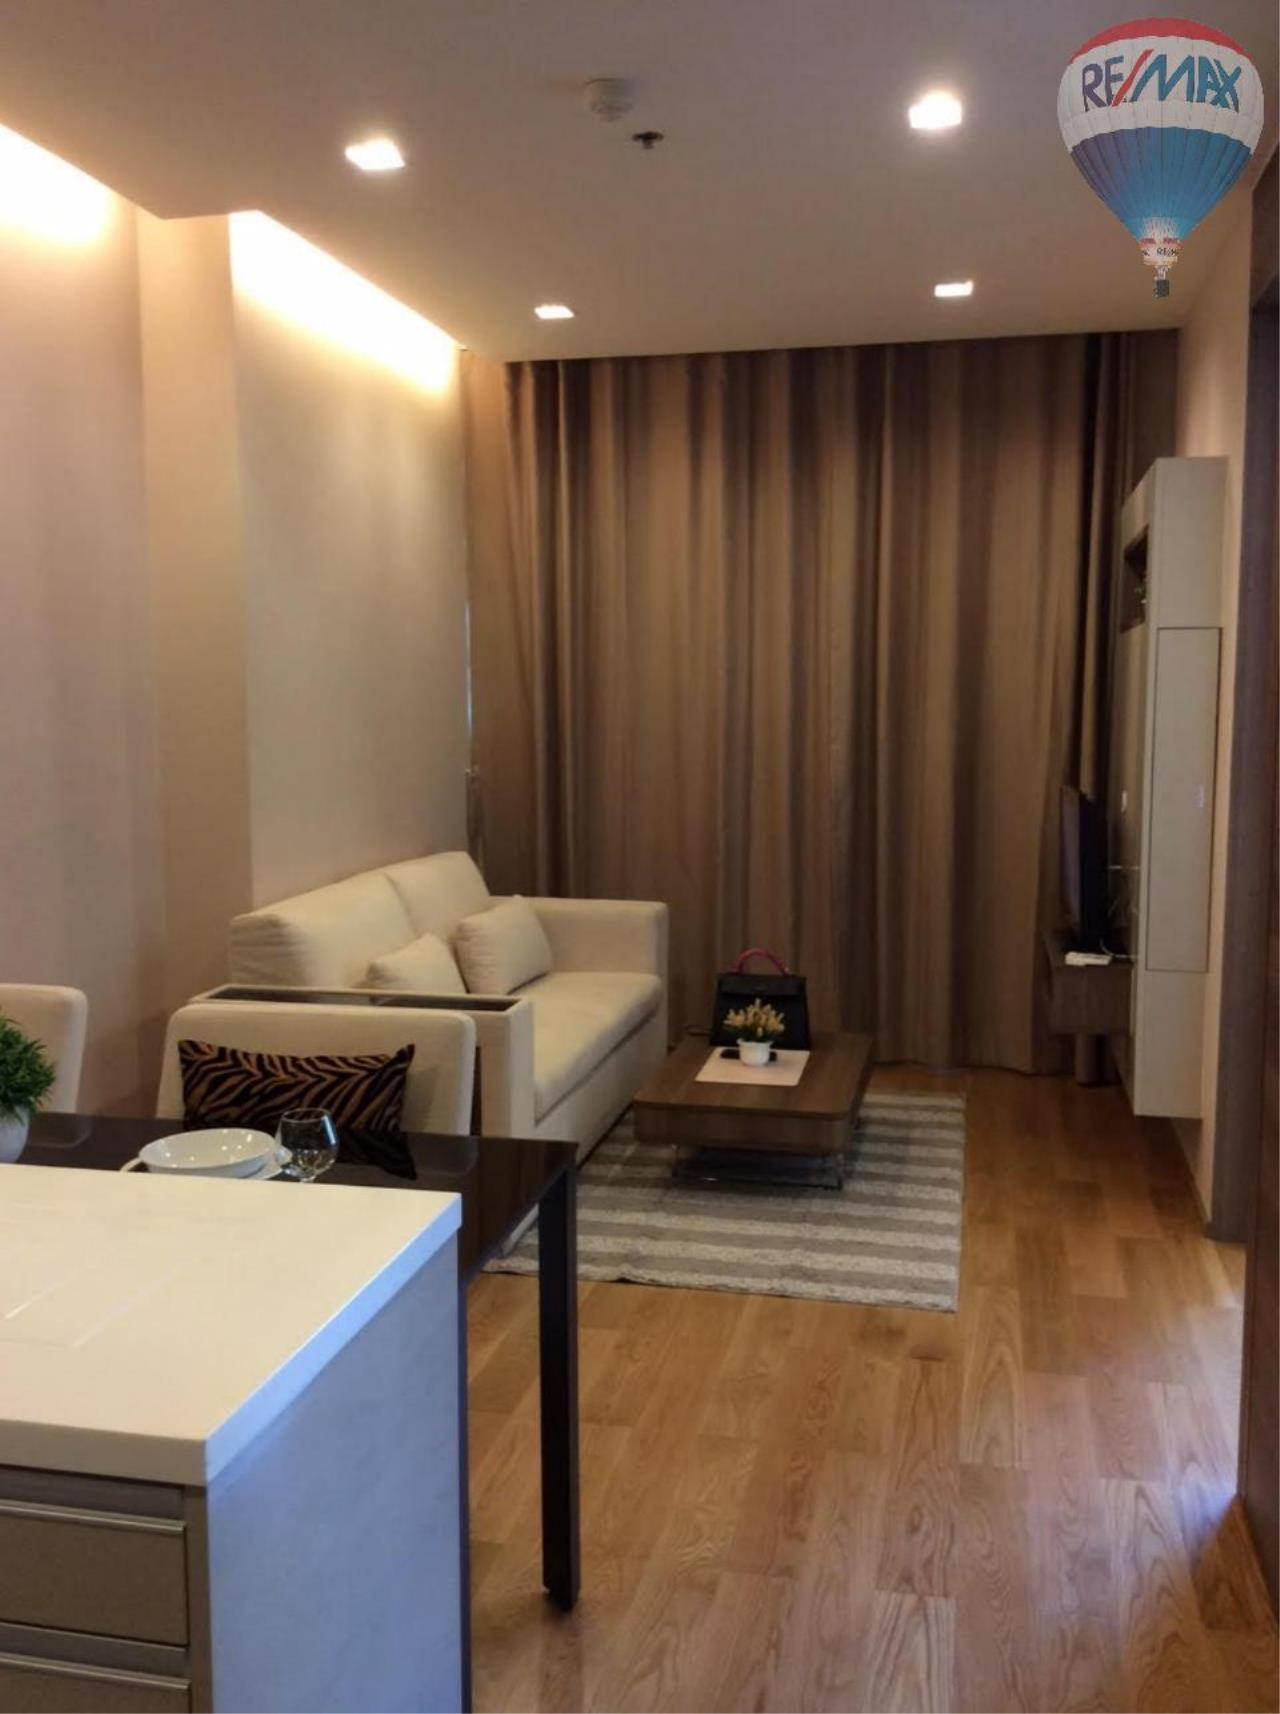 RE/MAX Properties Agency's 1 Bedroom 46.5 Sq.M. for sale in The Address Sathorn 2